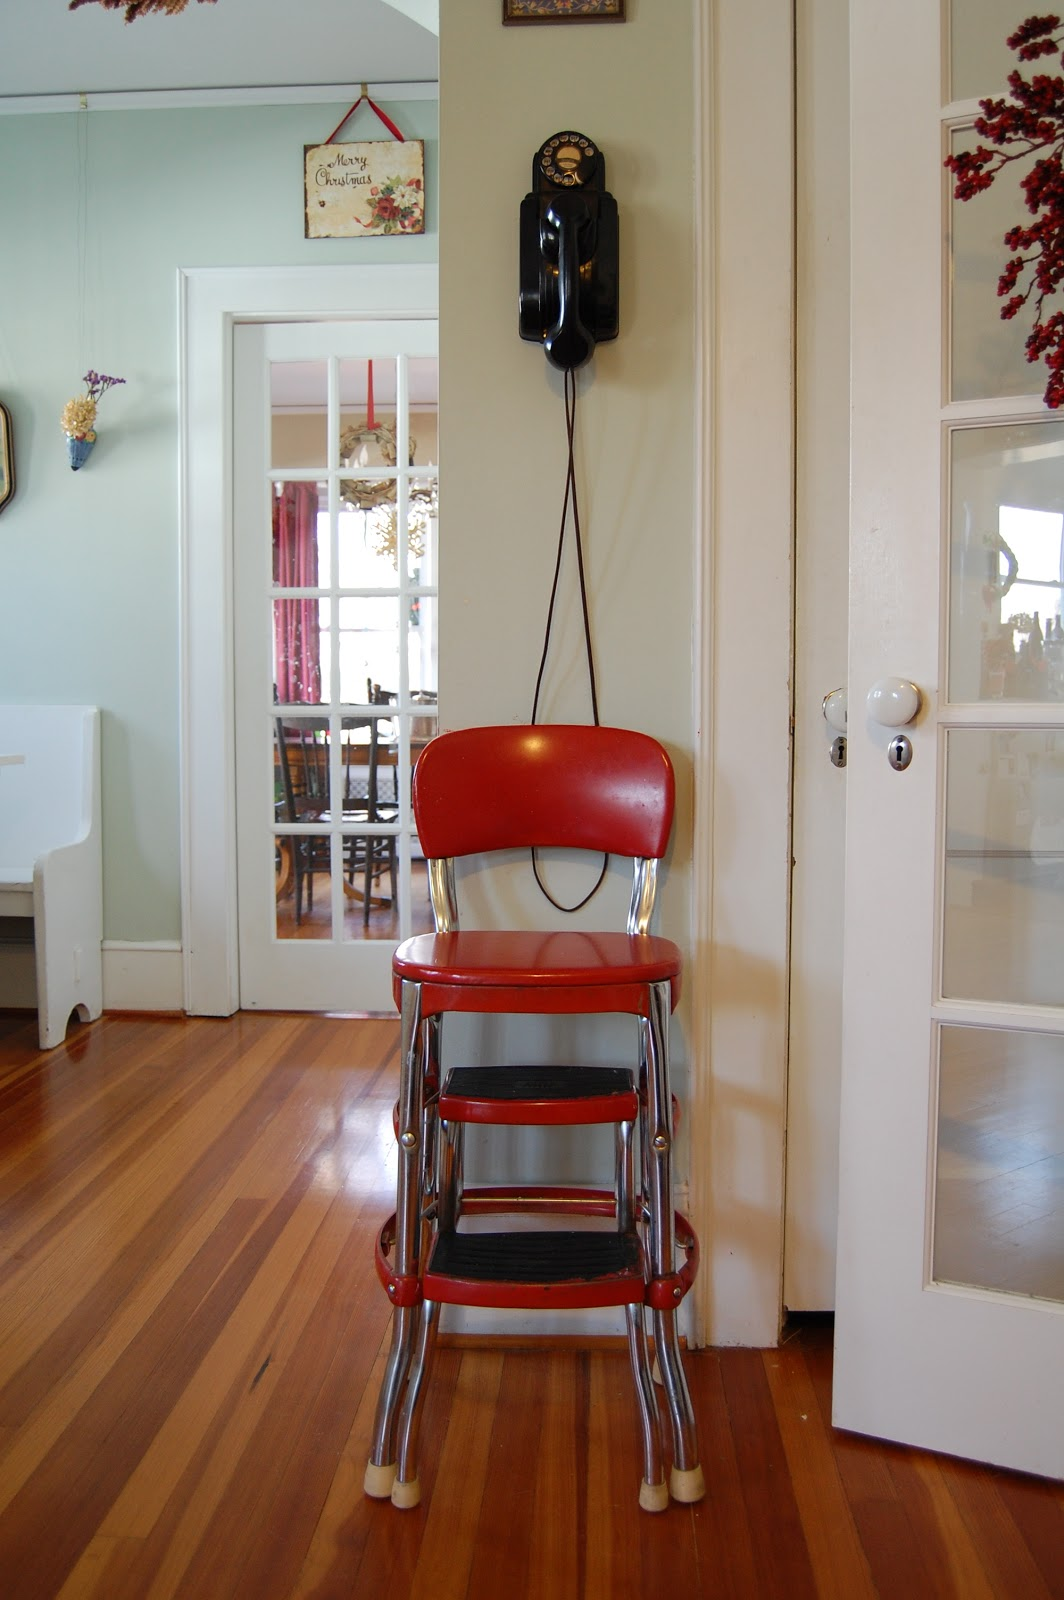 A Vintage Wall Phone And Cherry Red Step Stool Add To The Charm Of Their  Vintage Style Kitchen.